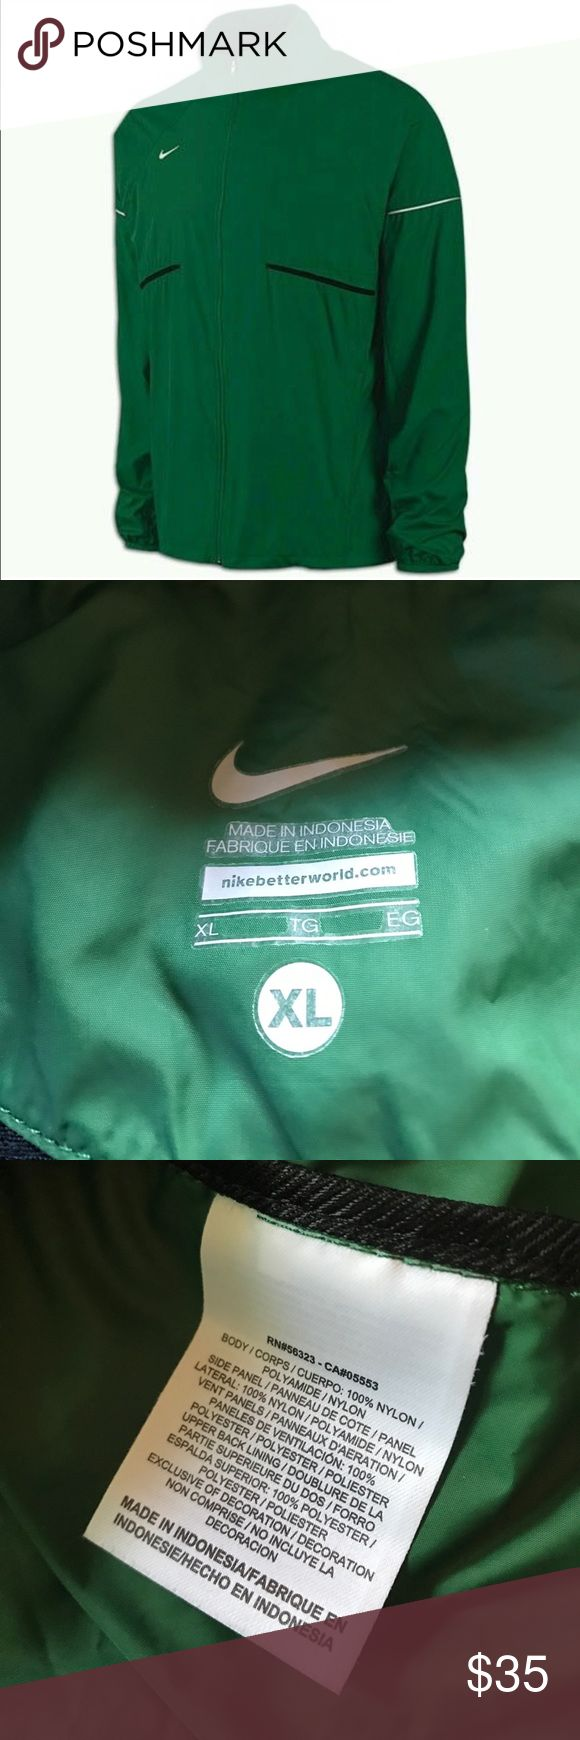 NIKE MEN'S XL ZOOM RUNNING WIND JACKET FULL ZIP NIKE MEN'S XL ZOOM RUNNING WIND JACKET FULL ZIP GREEN WATER RESIST, like new. Nike Jackets & Coats Windbreakers